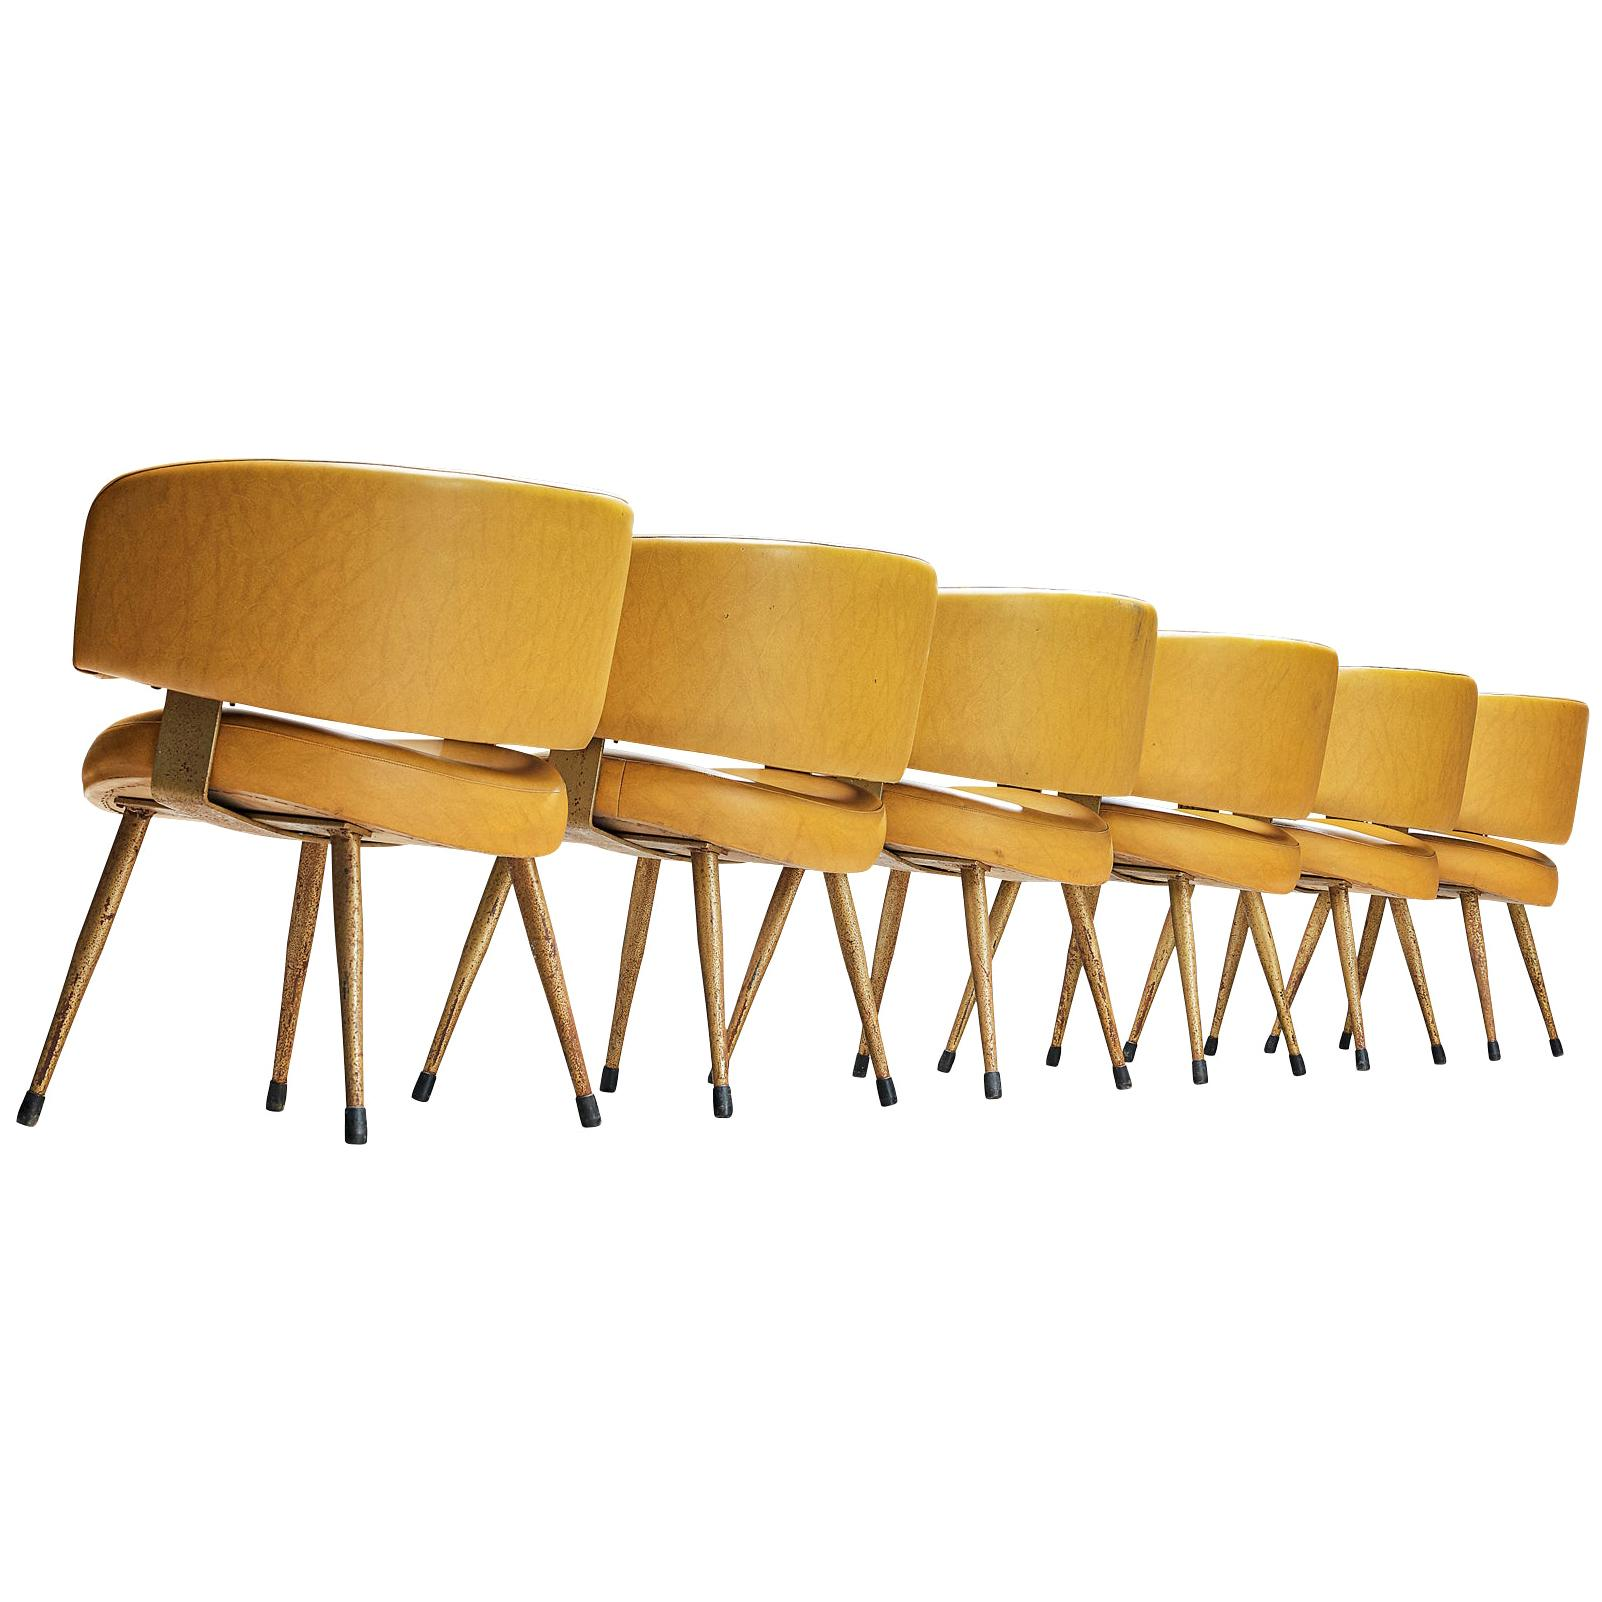 Italian Armchairs in Yellow Leatherette